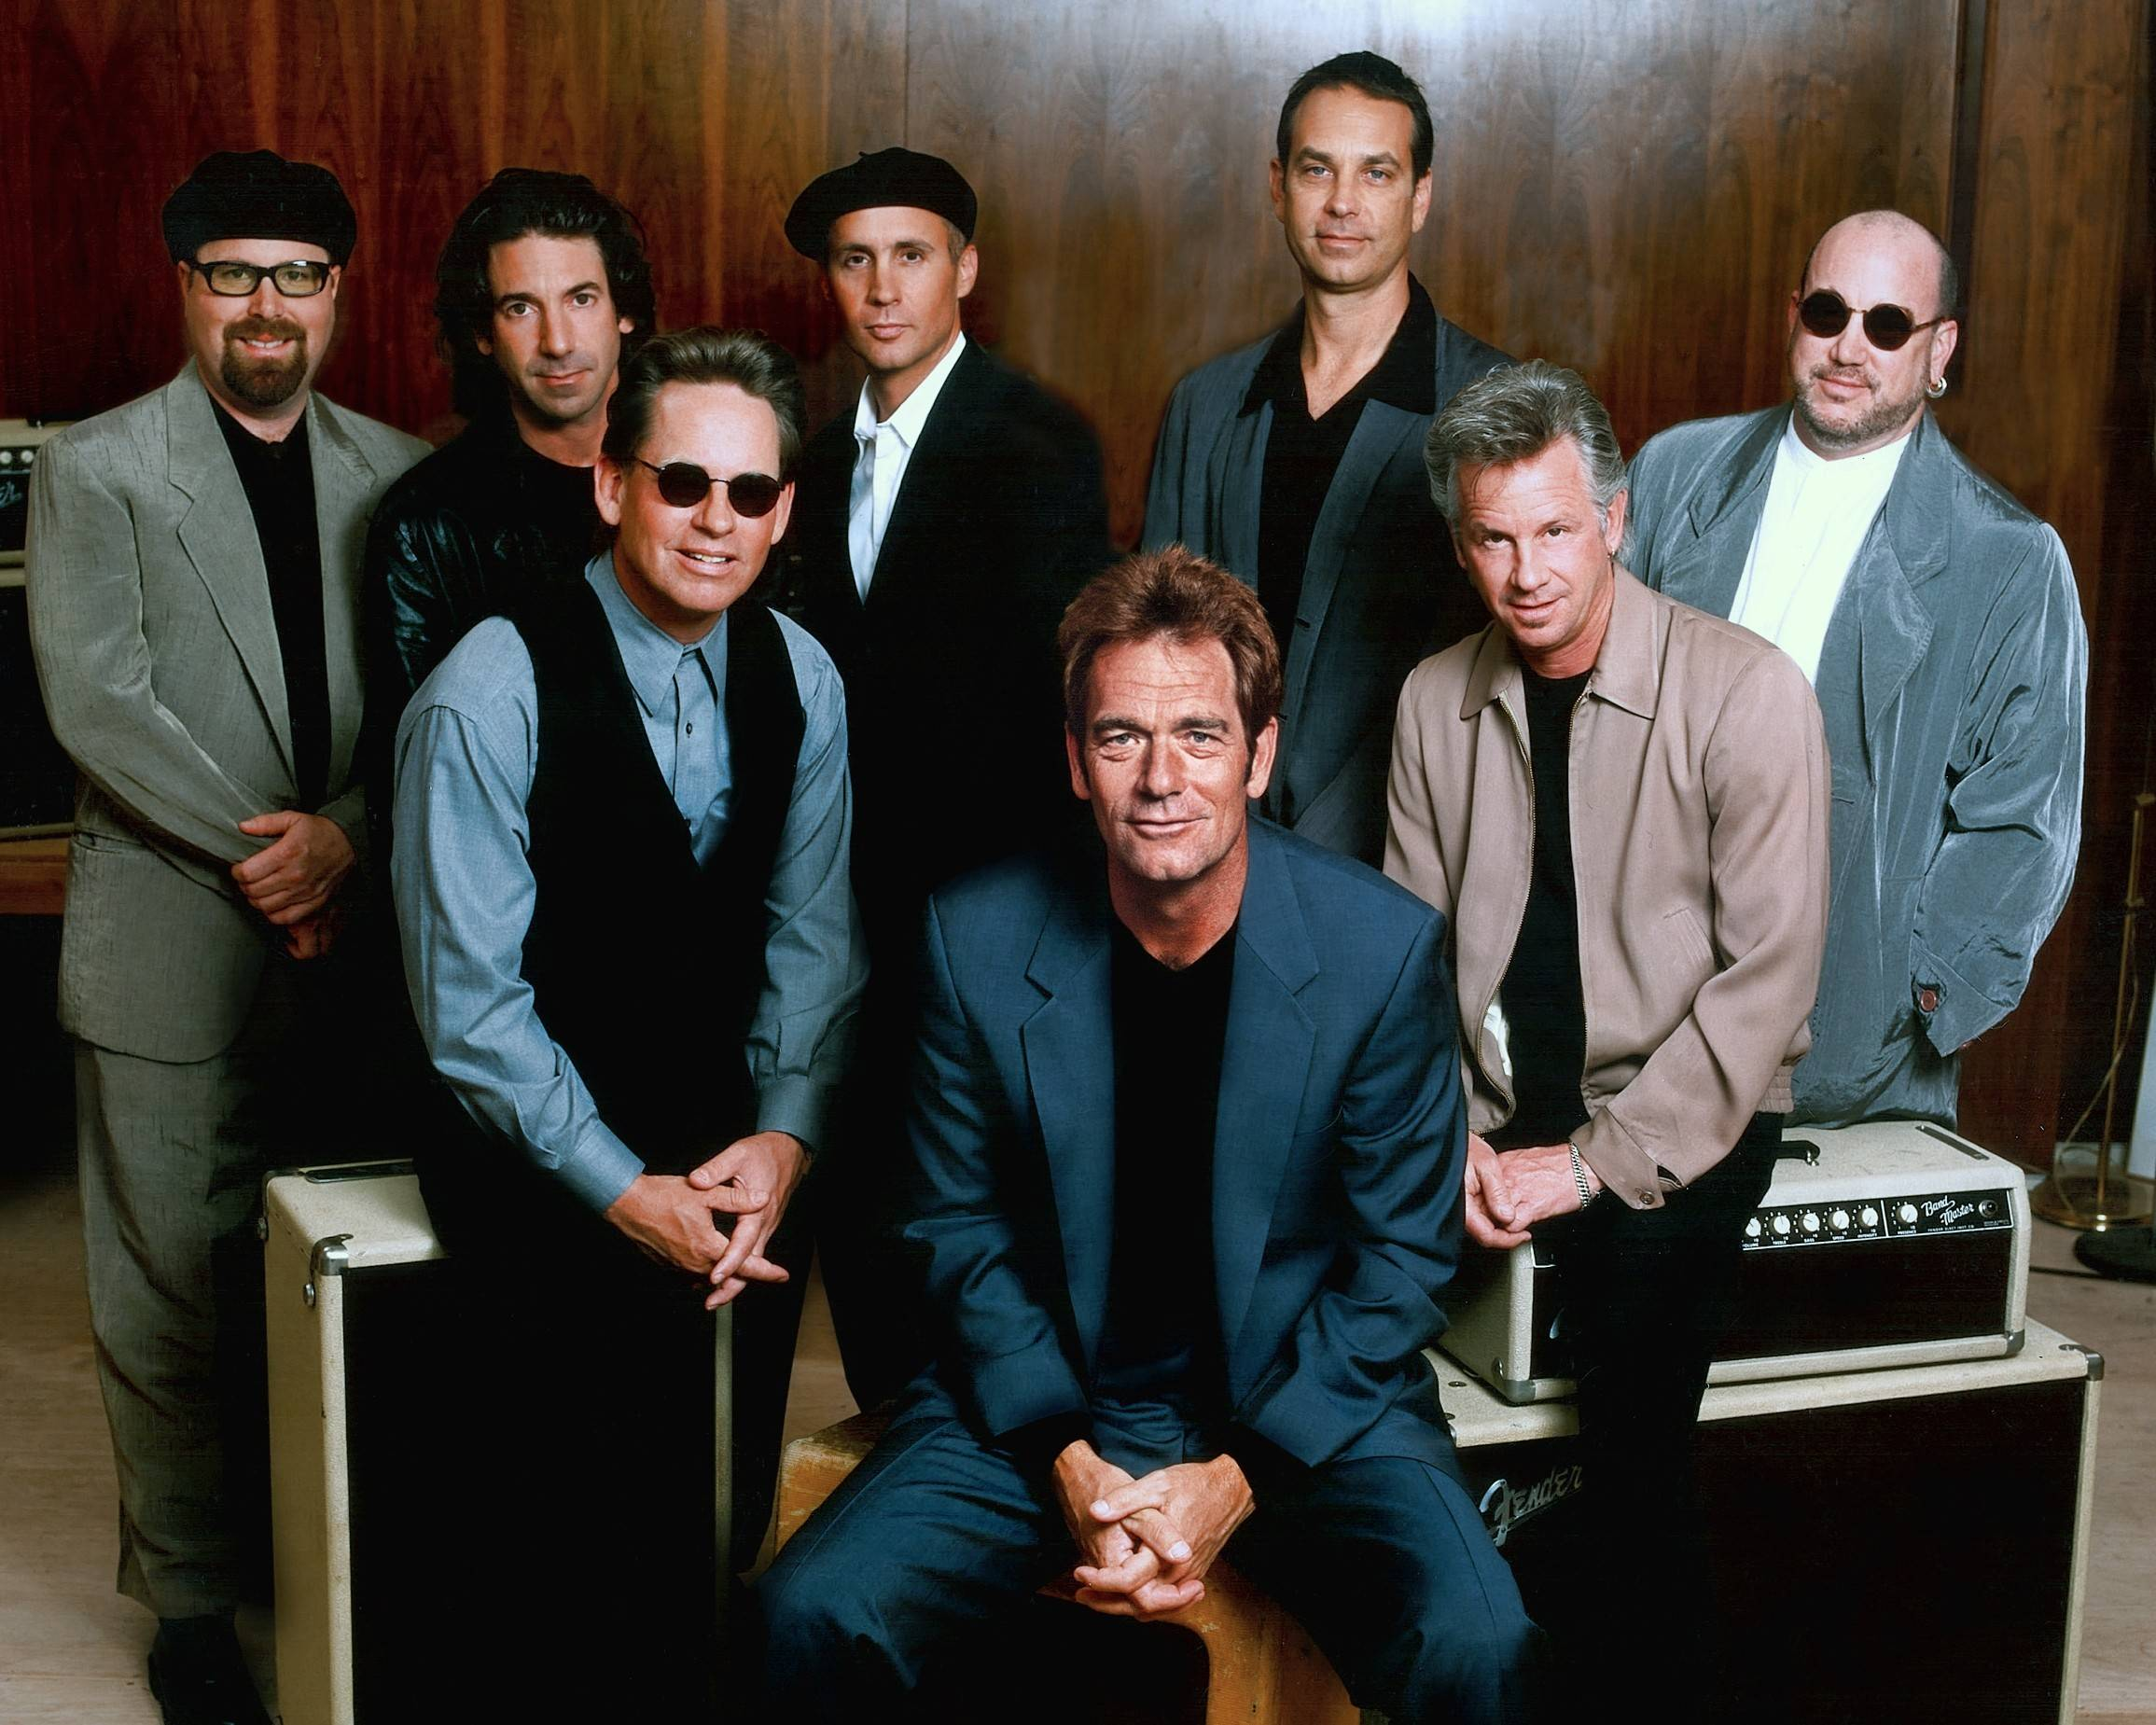 Huey Lewis and the News plays their hits at North Central College's Pfeiffer Hall in Naperville Sunday, Oct. 19.